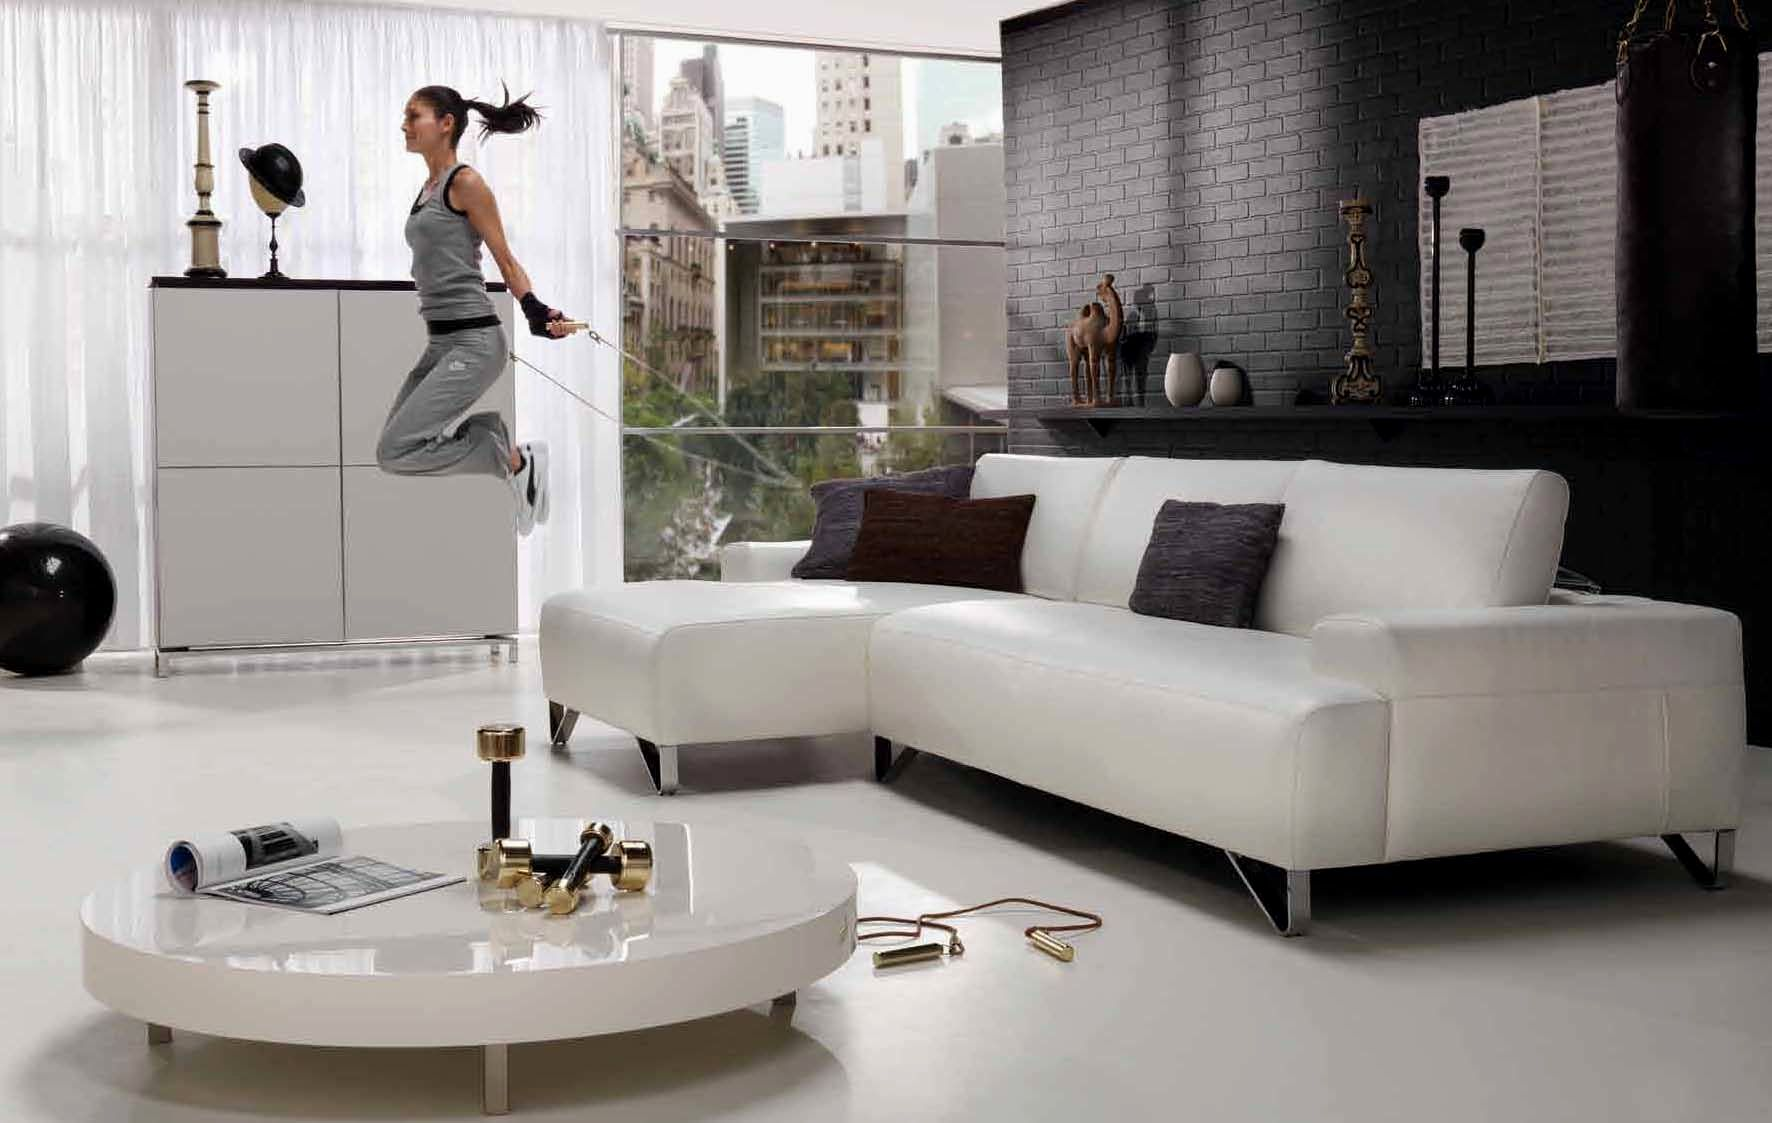 finest gray sofa living room image-Best Of Gray sofa Living Room Layout